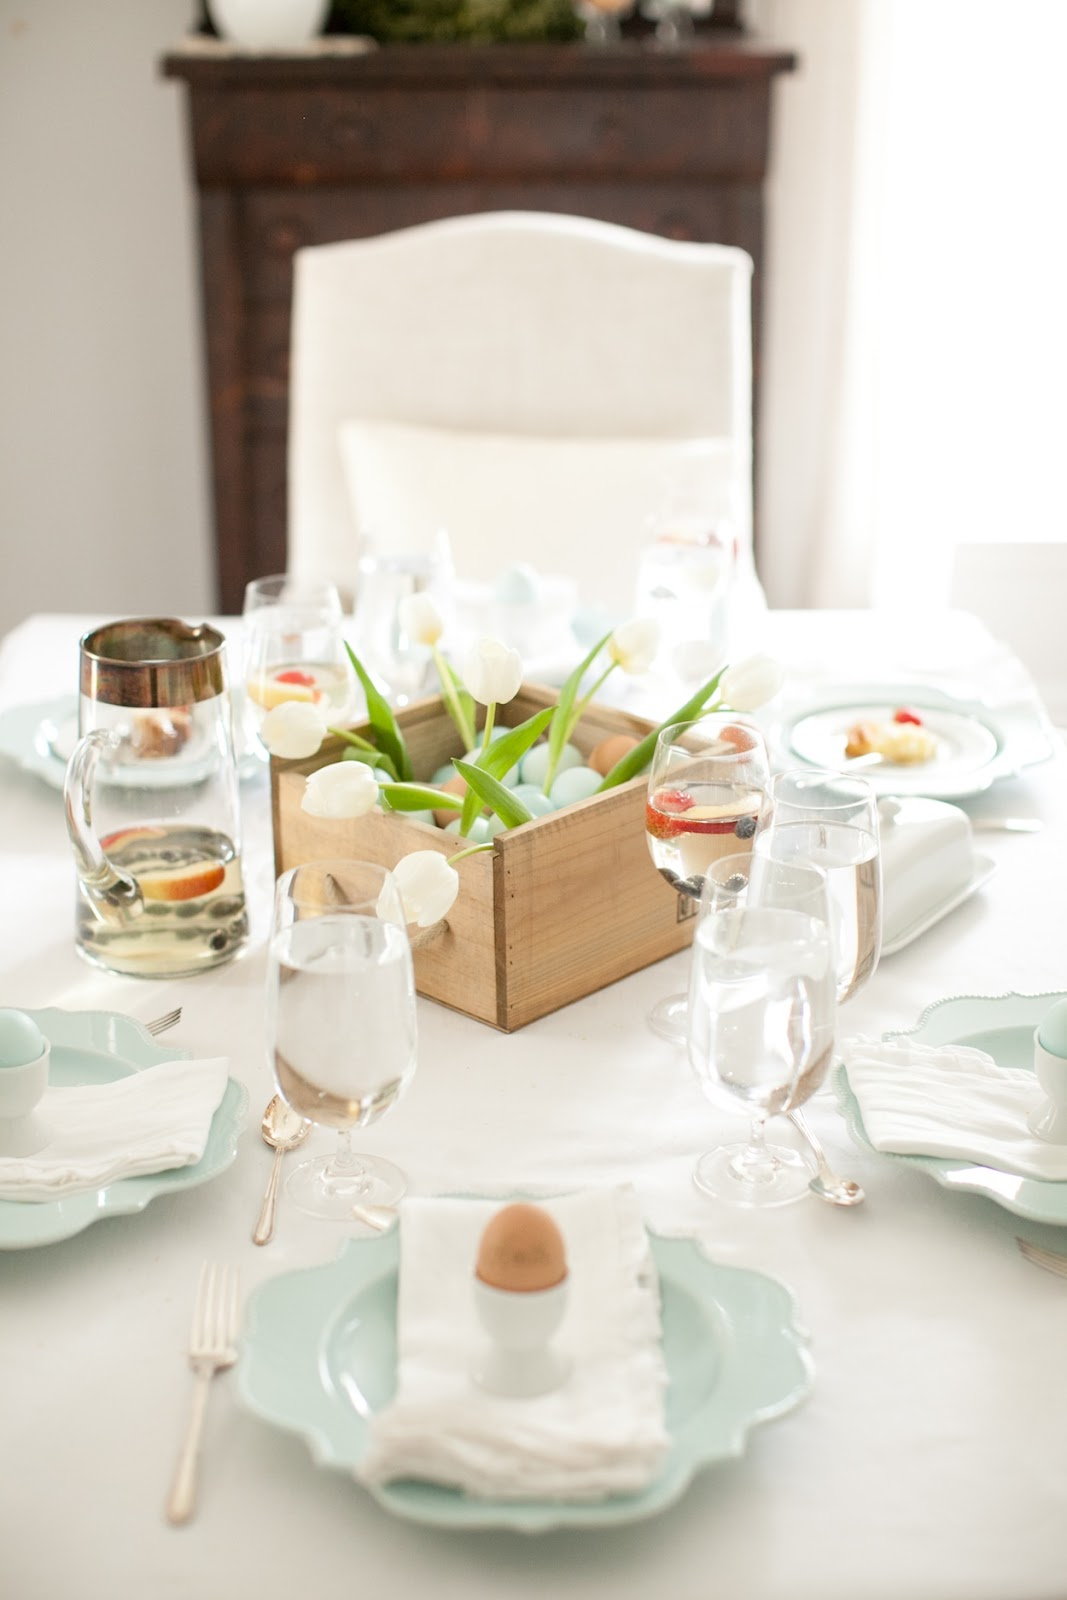 Best Easter Brunch Table Setting This Month